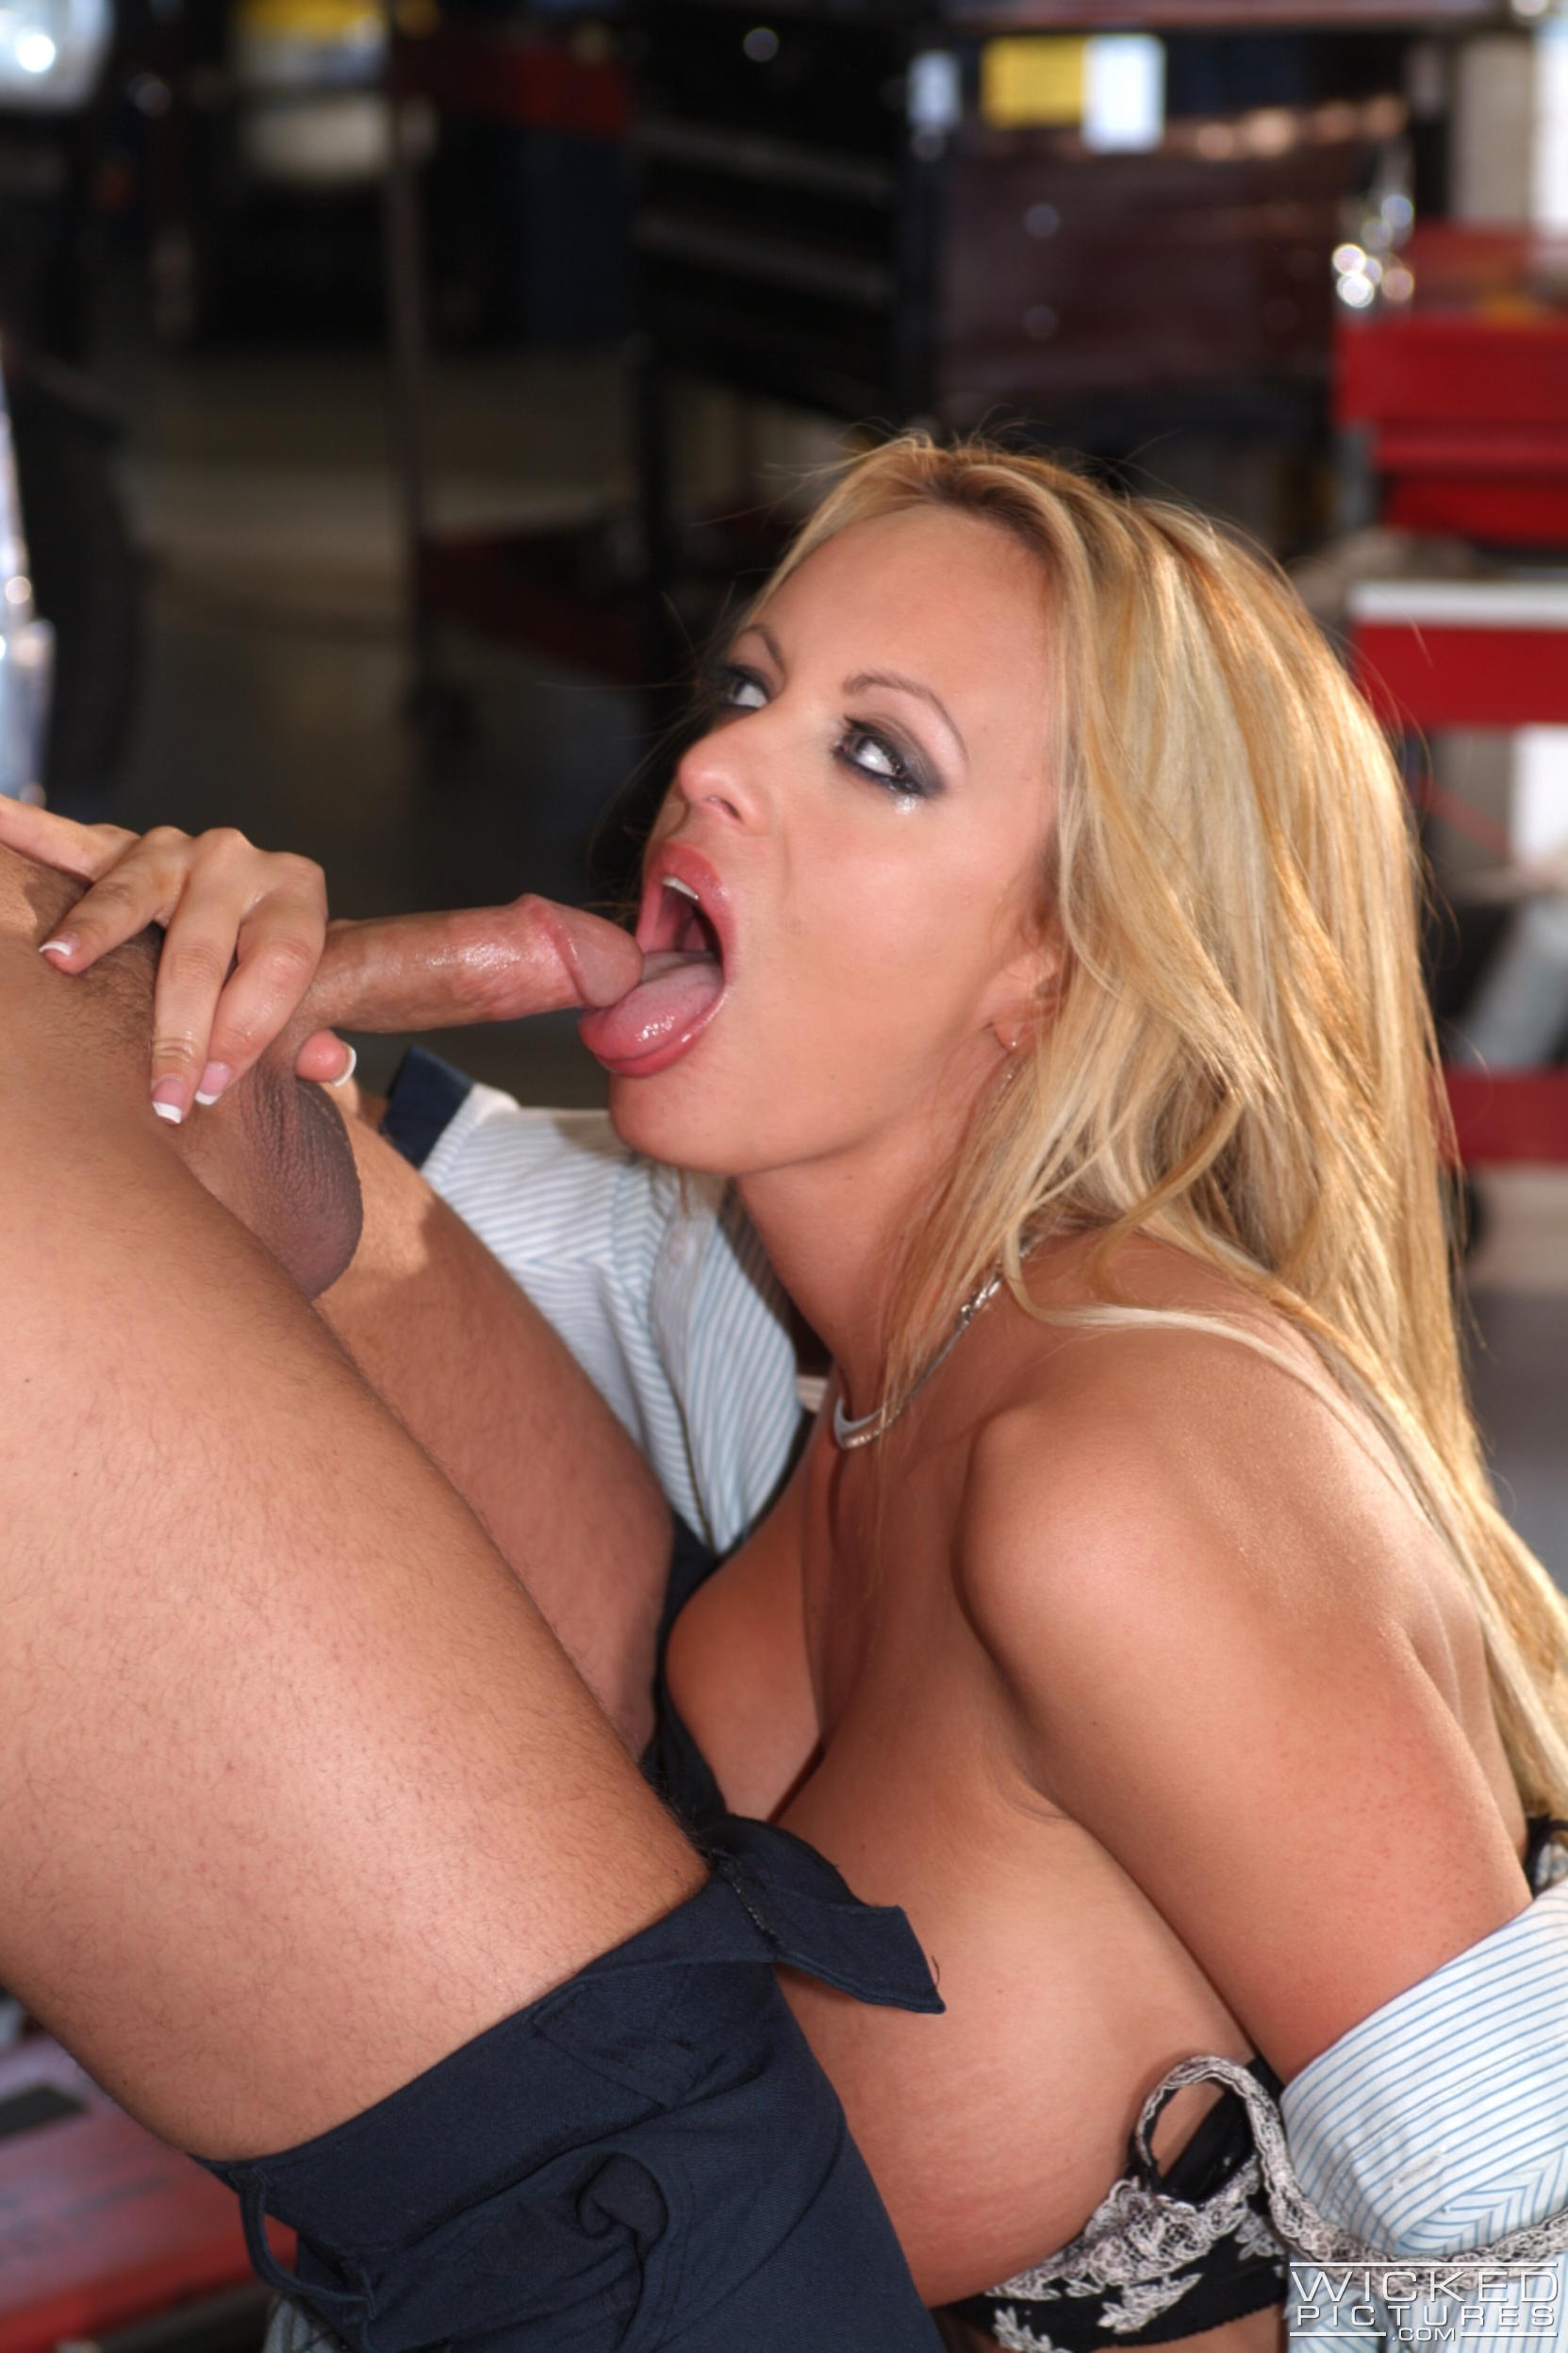 Wicked 'The Closer Scene 7' starring Stormy Daniels (Photo 36)